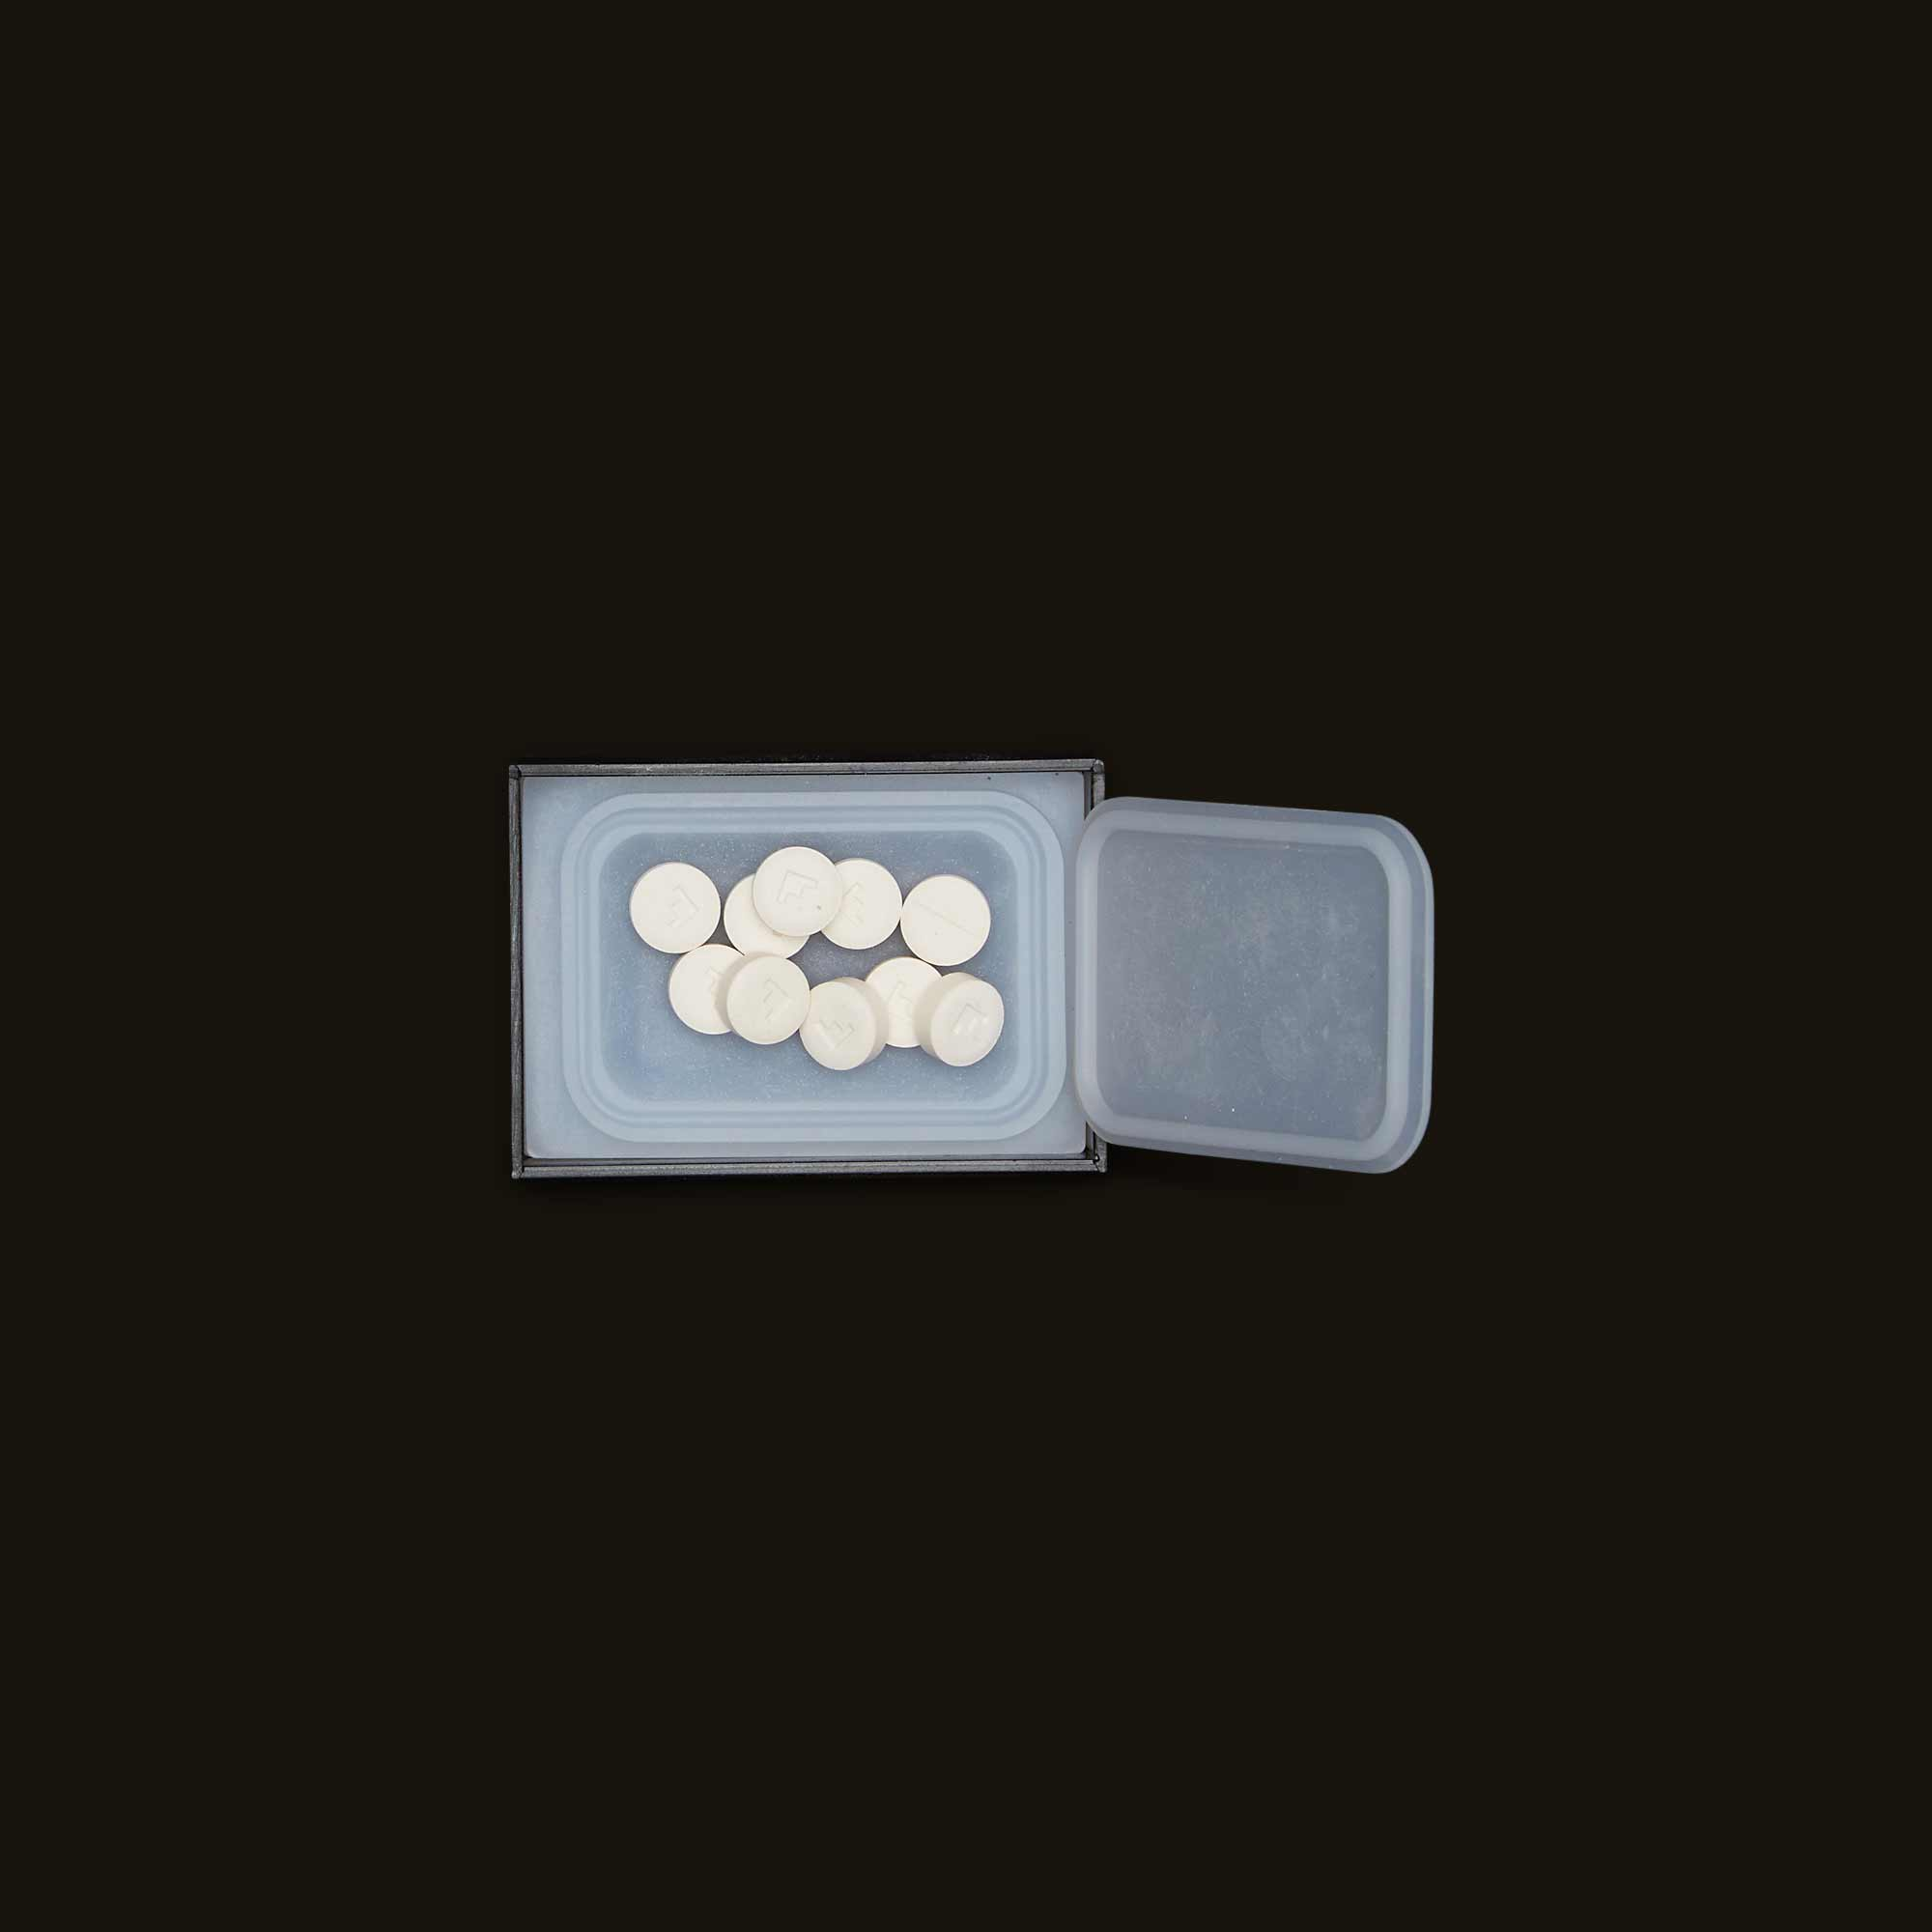 Level Hangover Pills in a box